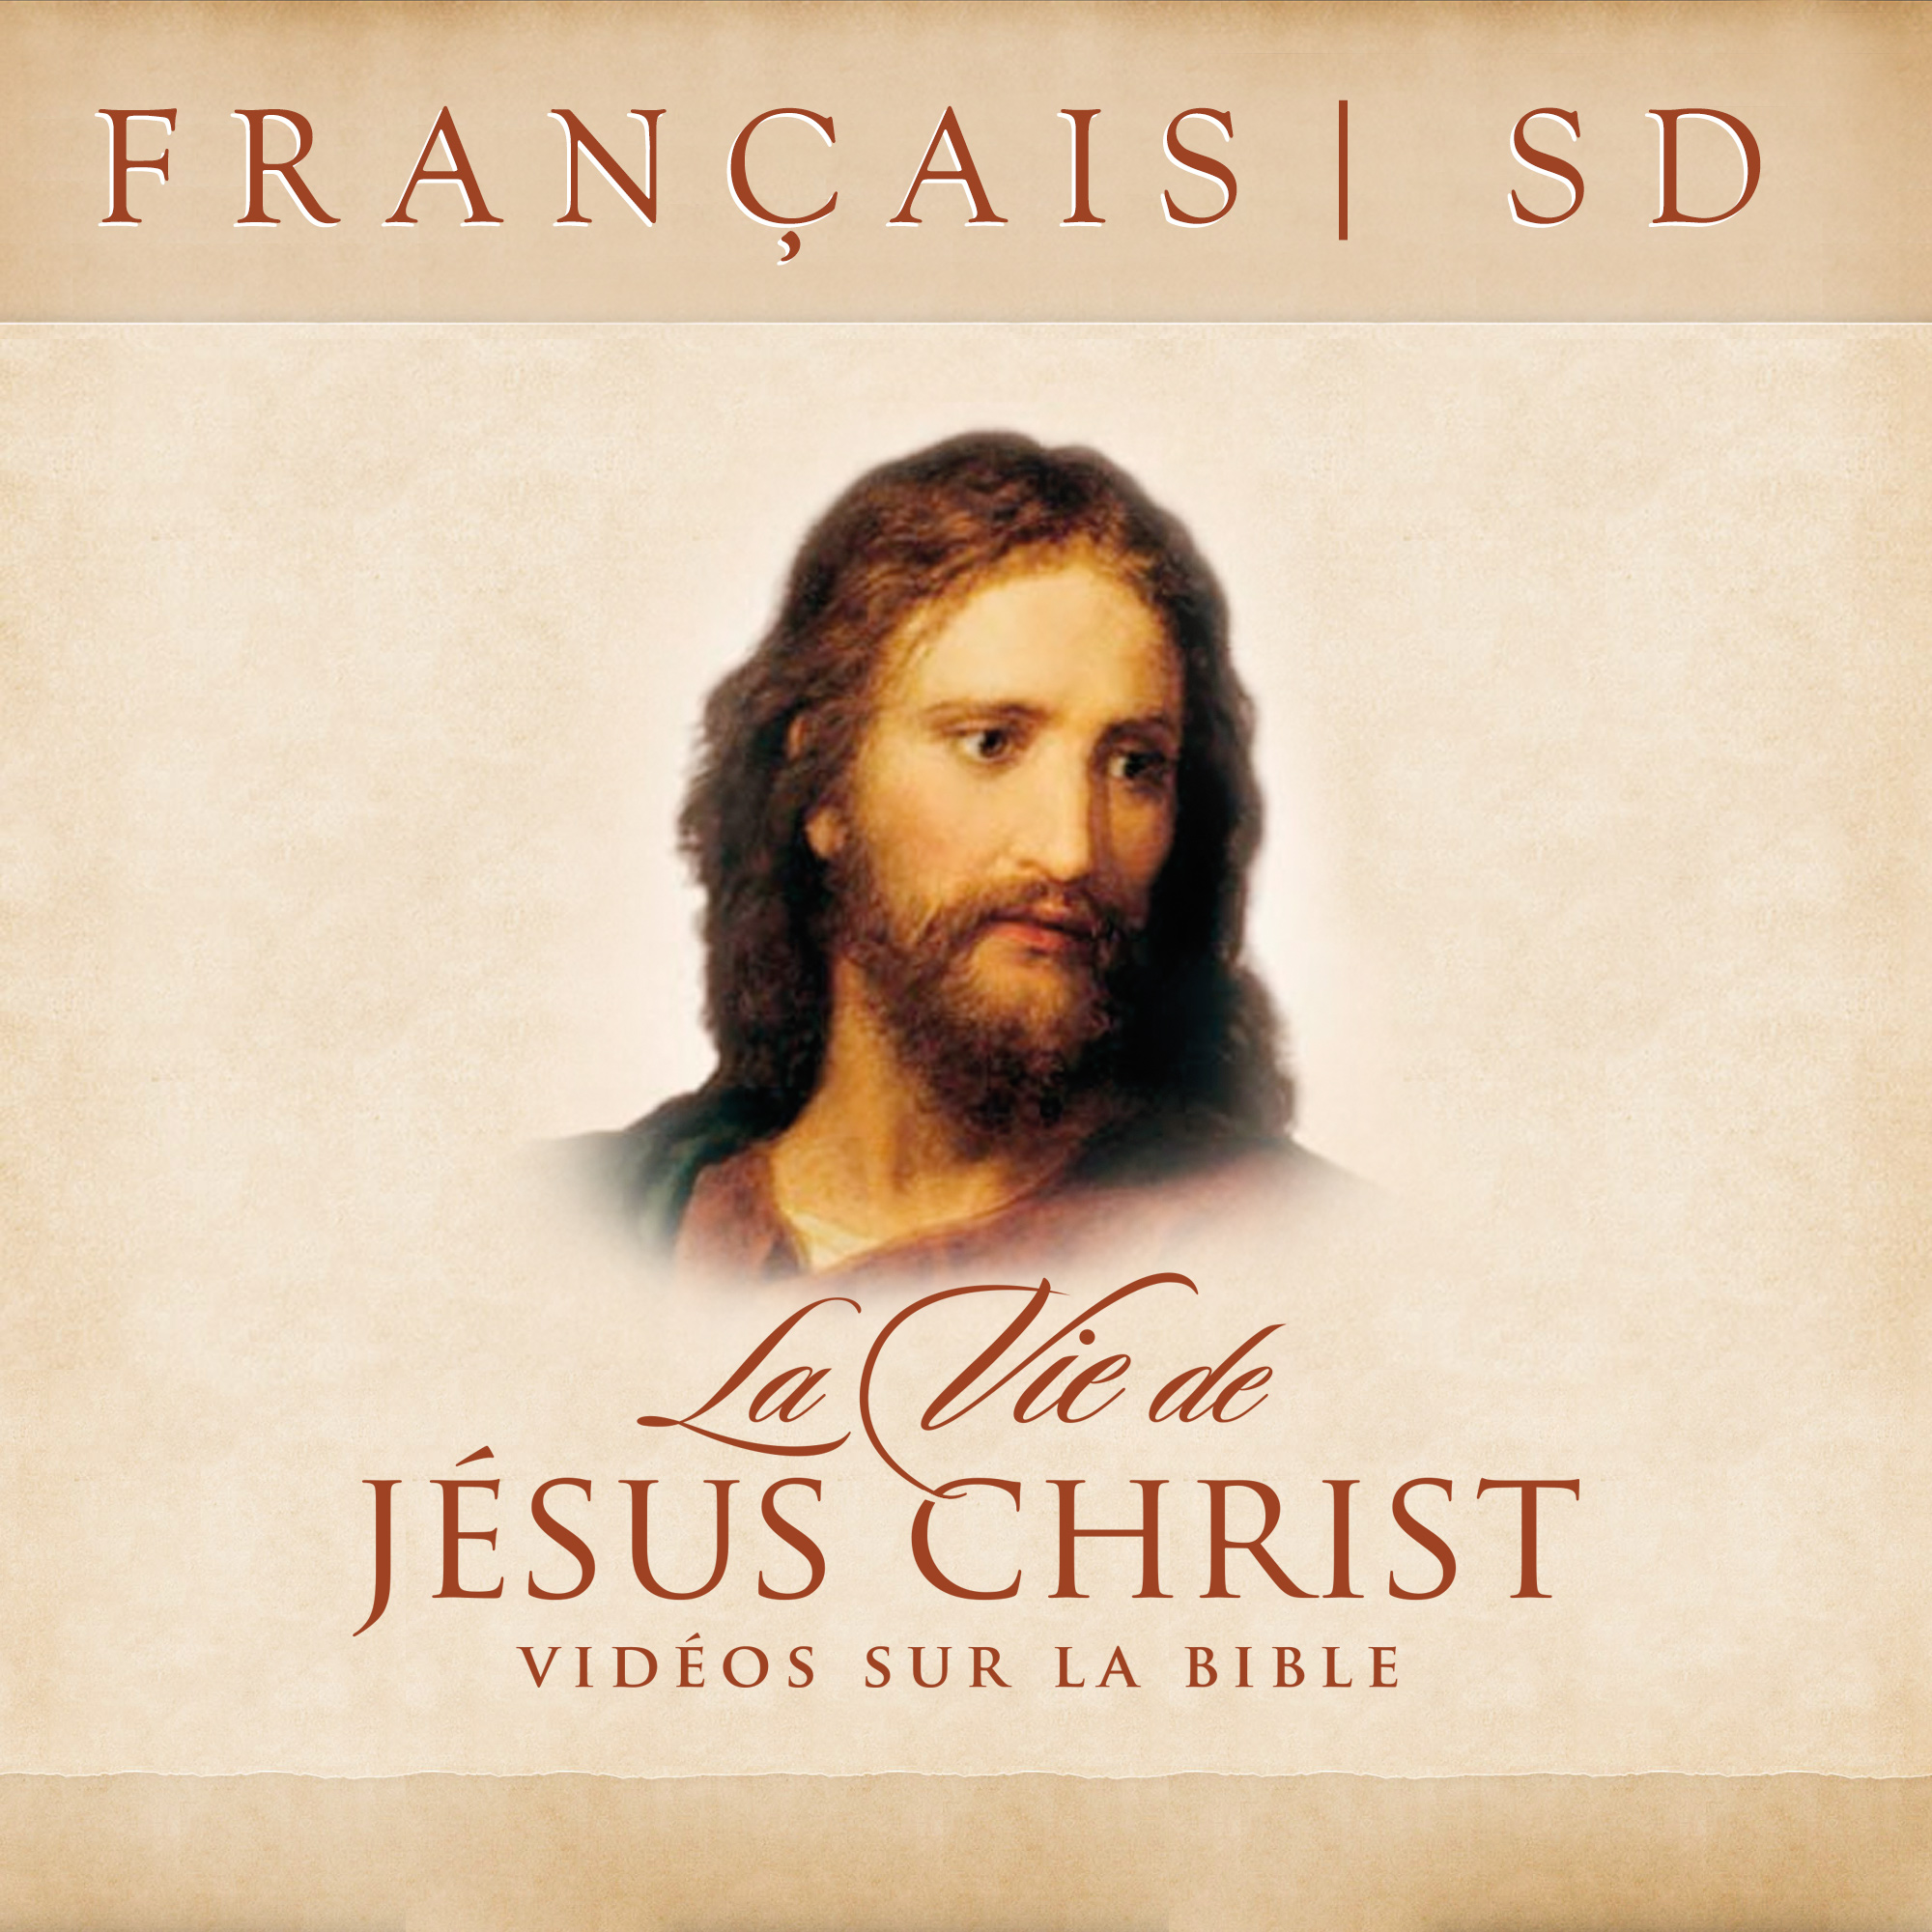 The Life of Jesus Christ—Bible Videos | SD | FRENCH